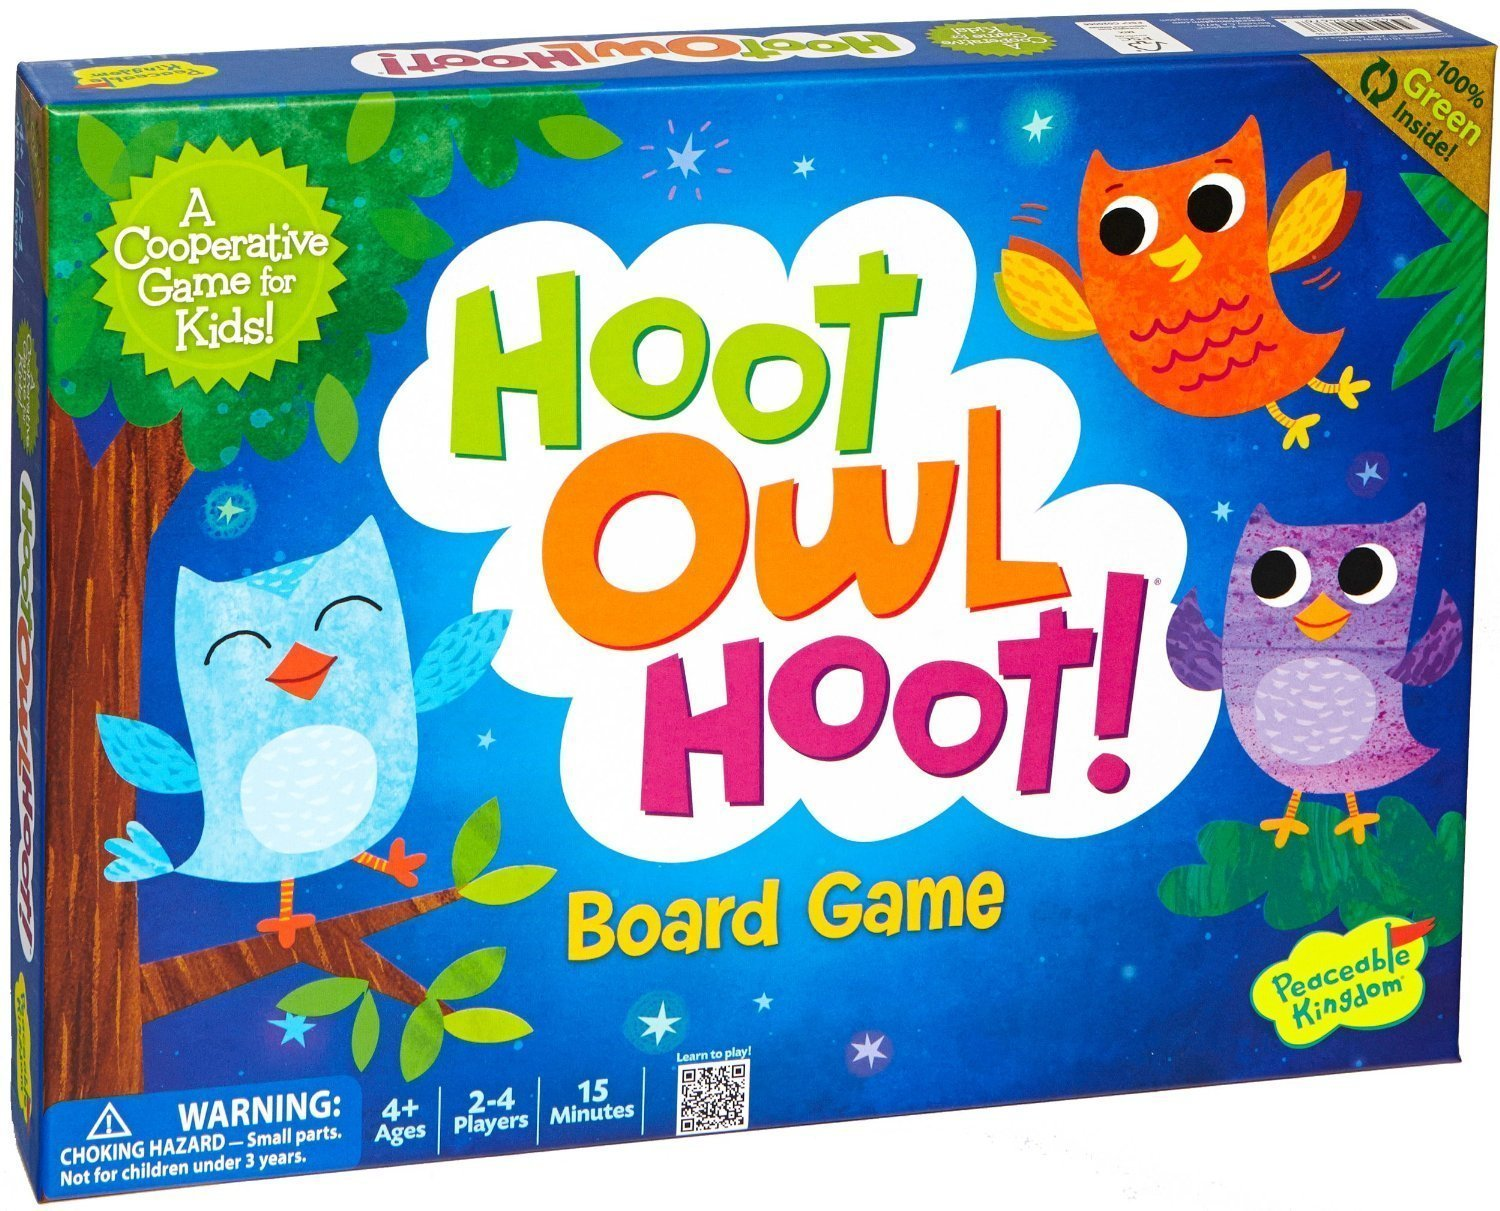 Cooperative Board Games For Kids